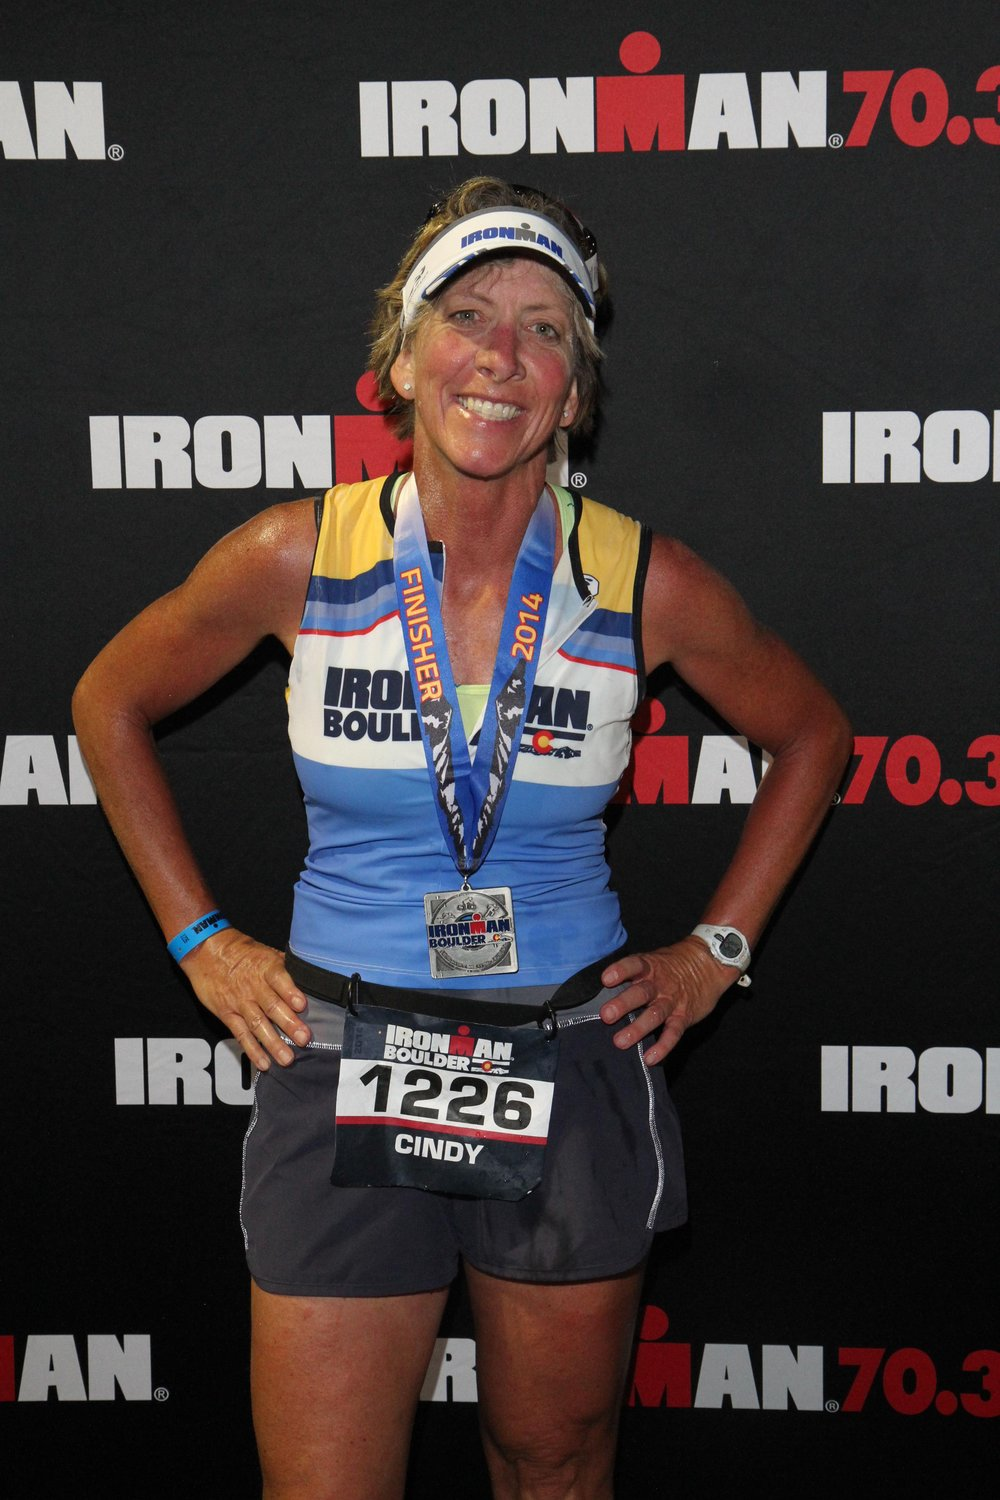 Dr. Cindy finishing the Boulder Ironman